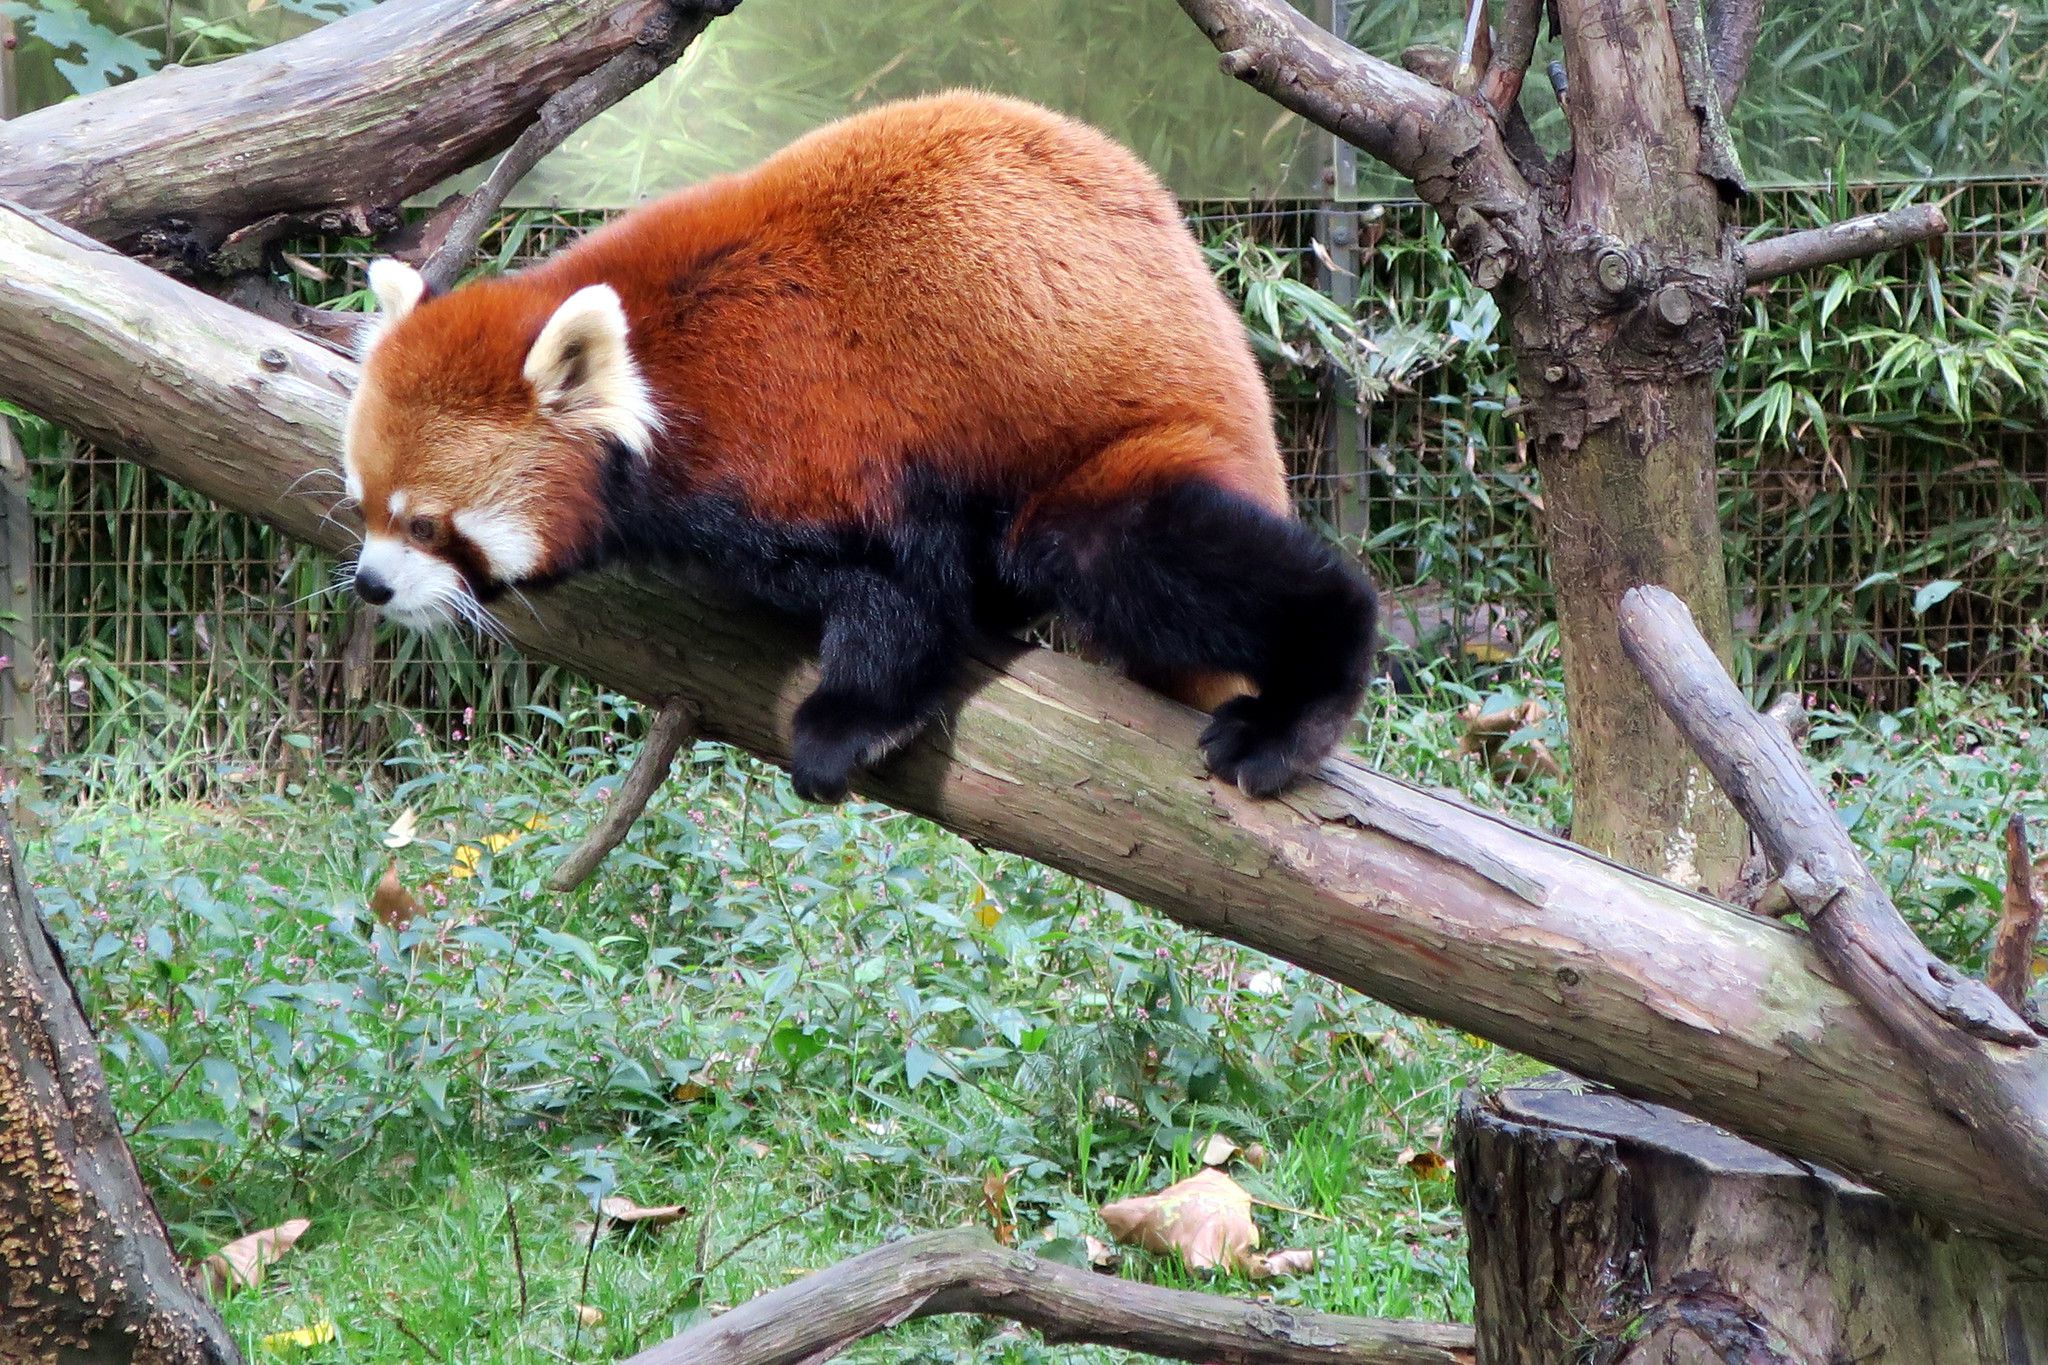 Red panda at the Prospect Park Zoo in Brooklyn